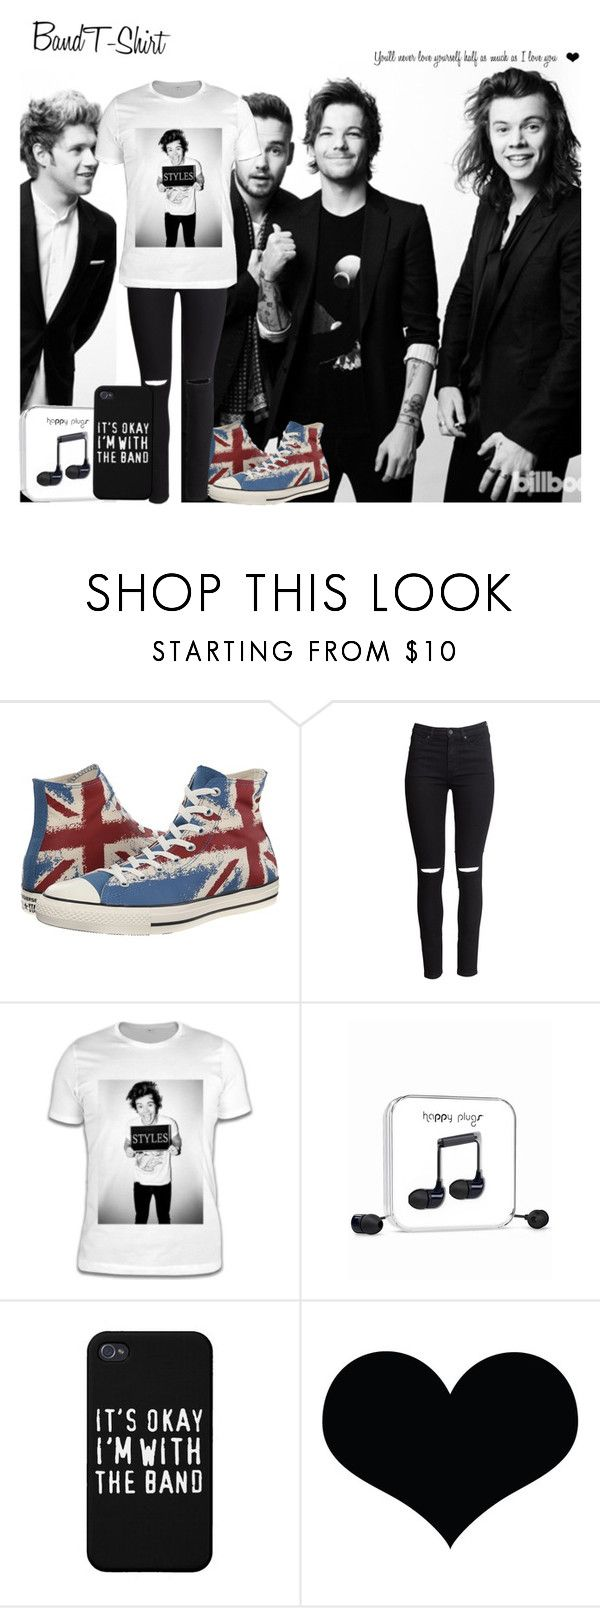 Band T-shirt by screaming-soul on Polyvore featuring H&M, Converse, Happy Plugs, OneDirection, directioner, bandtshirt and bandtee